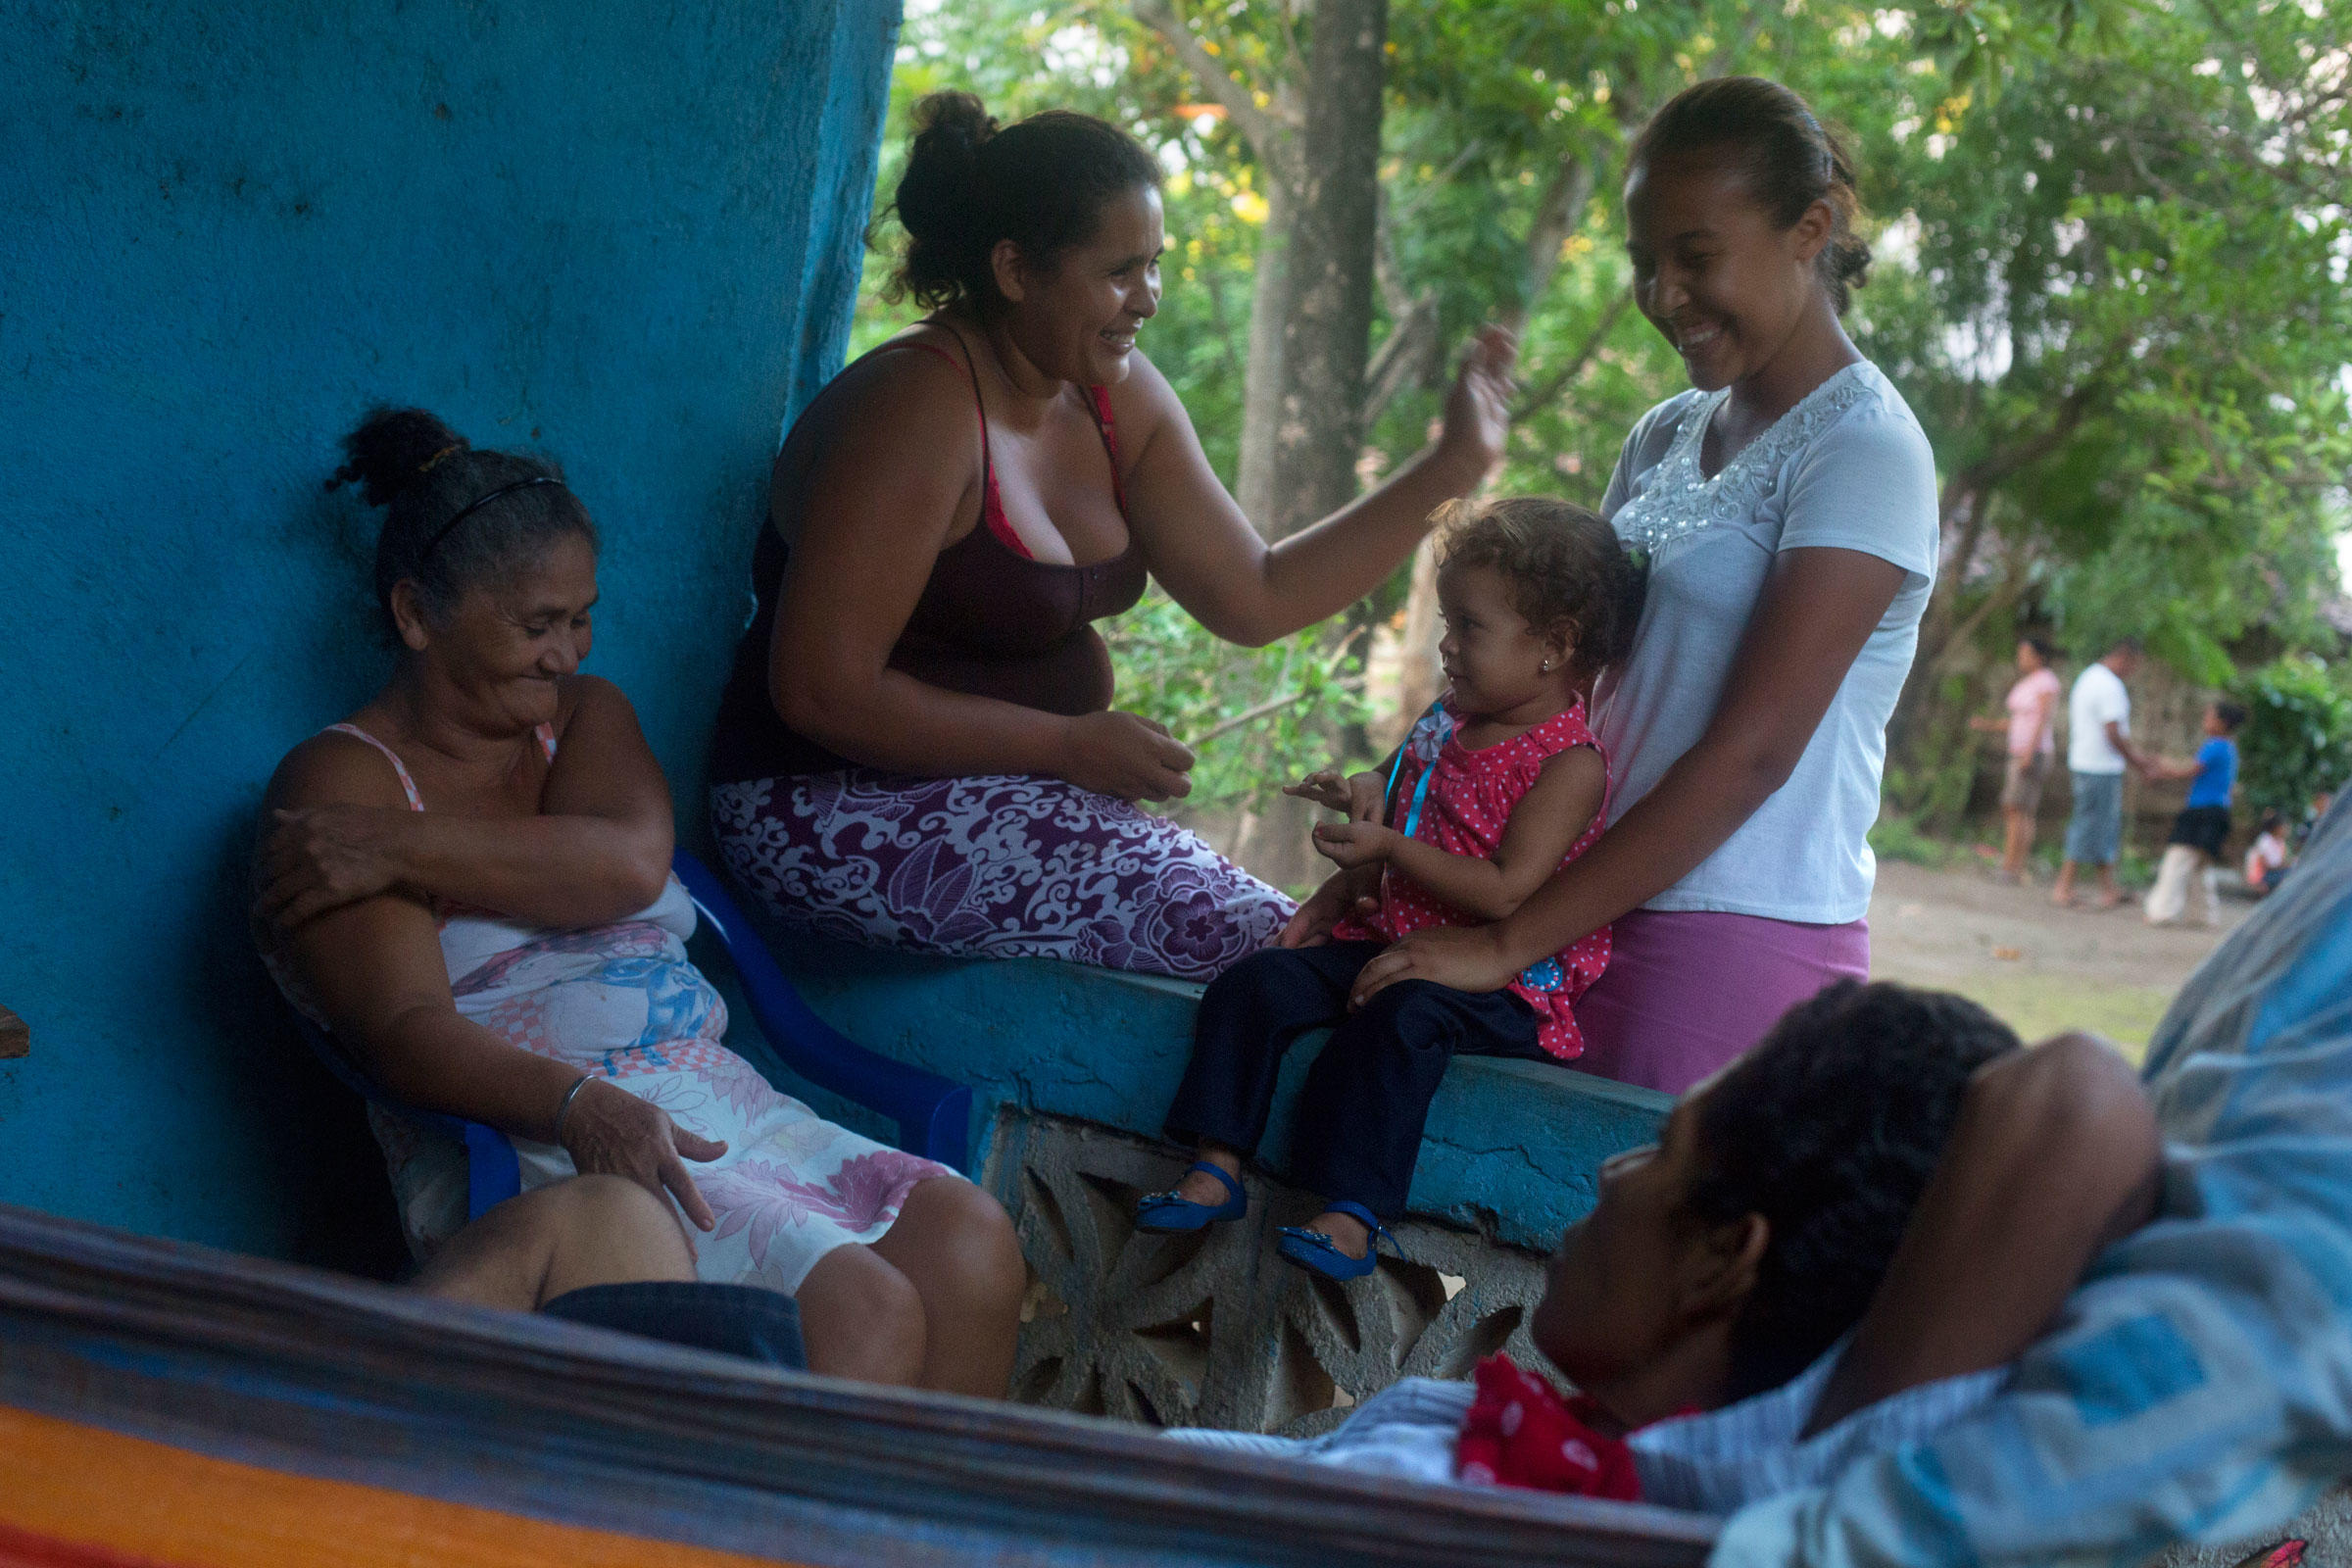 The Cantillano family lives in Santa Domingo Piche, and could be displaced by the new canal. Ivan Kashinsky